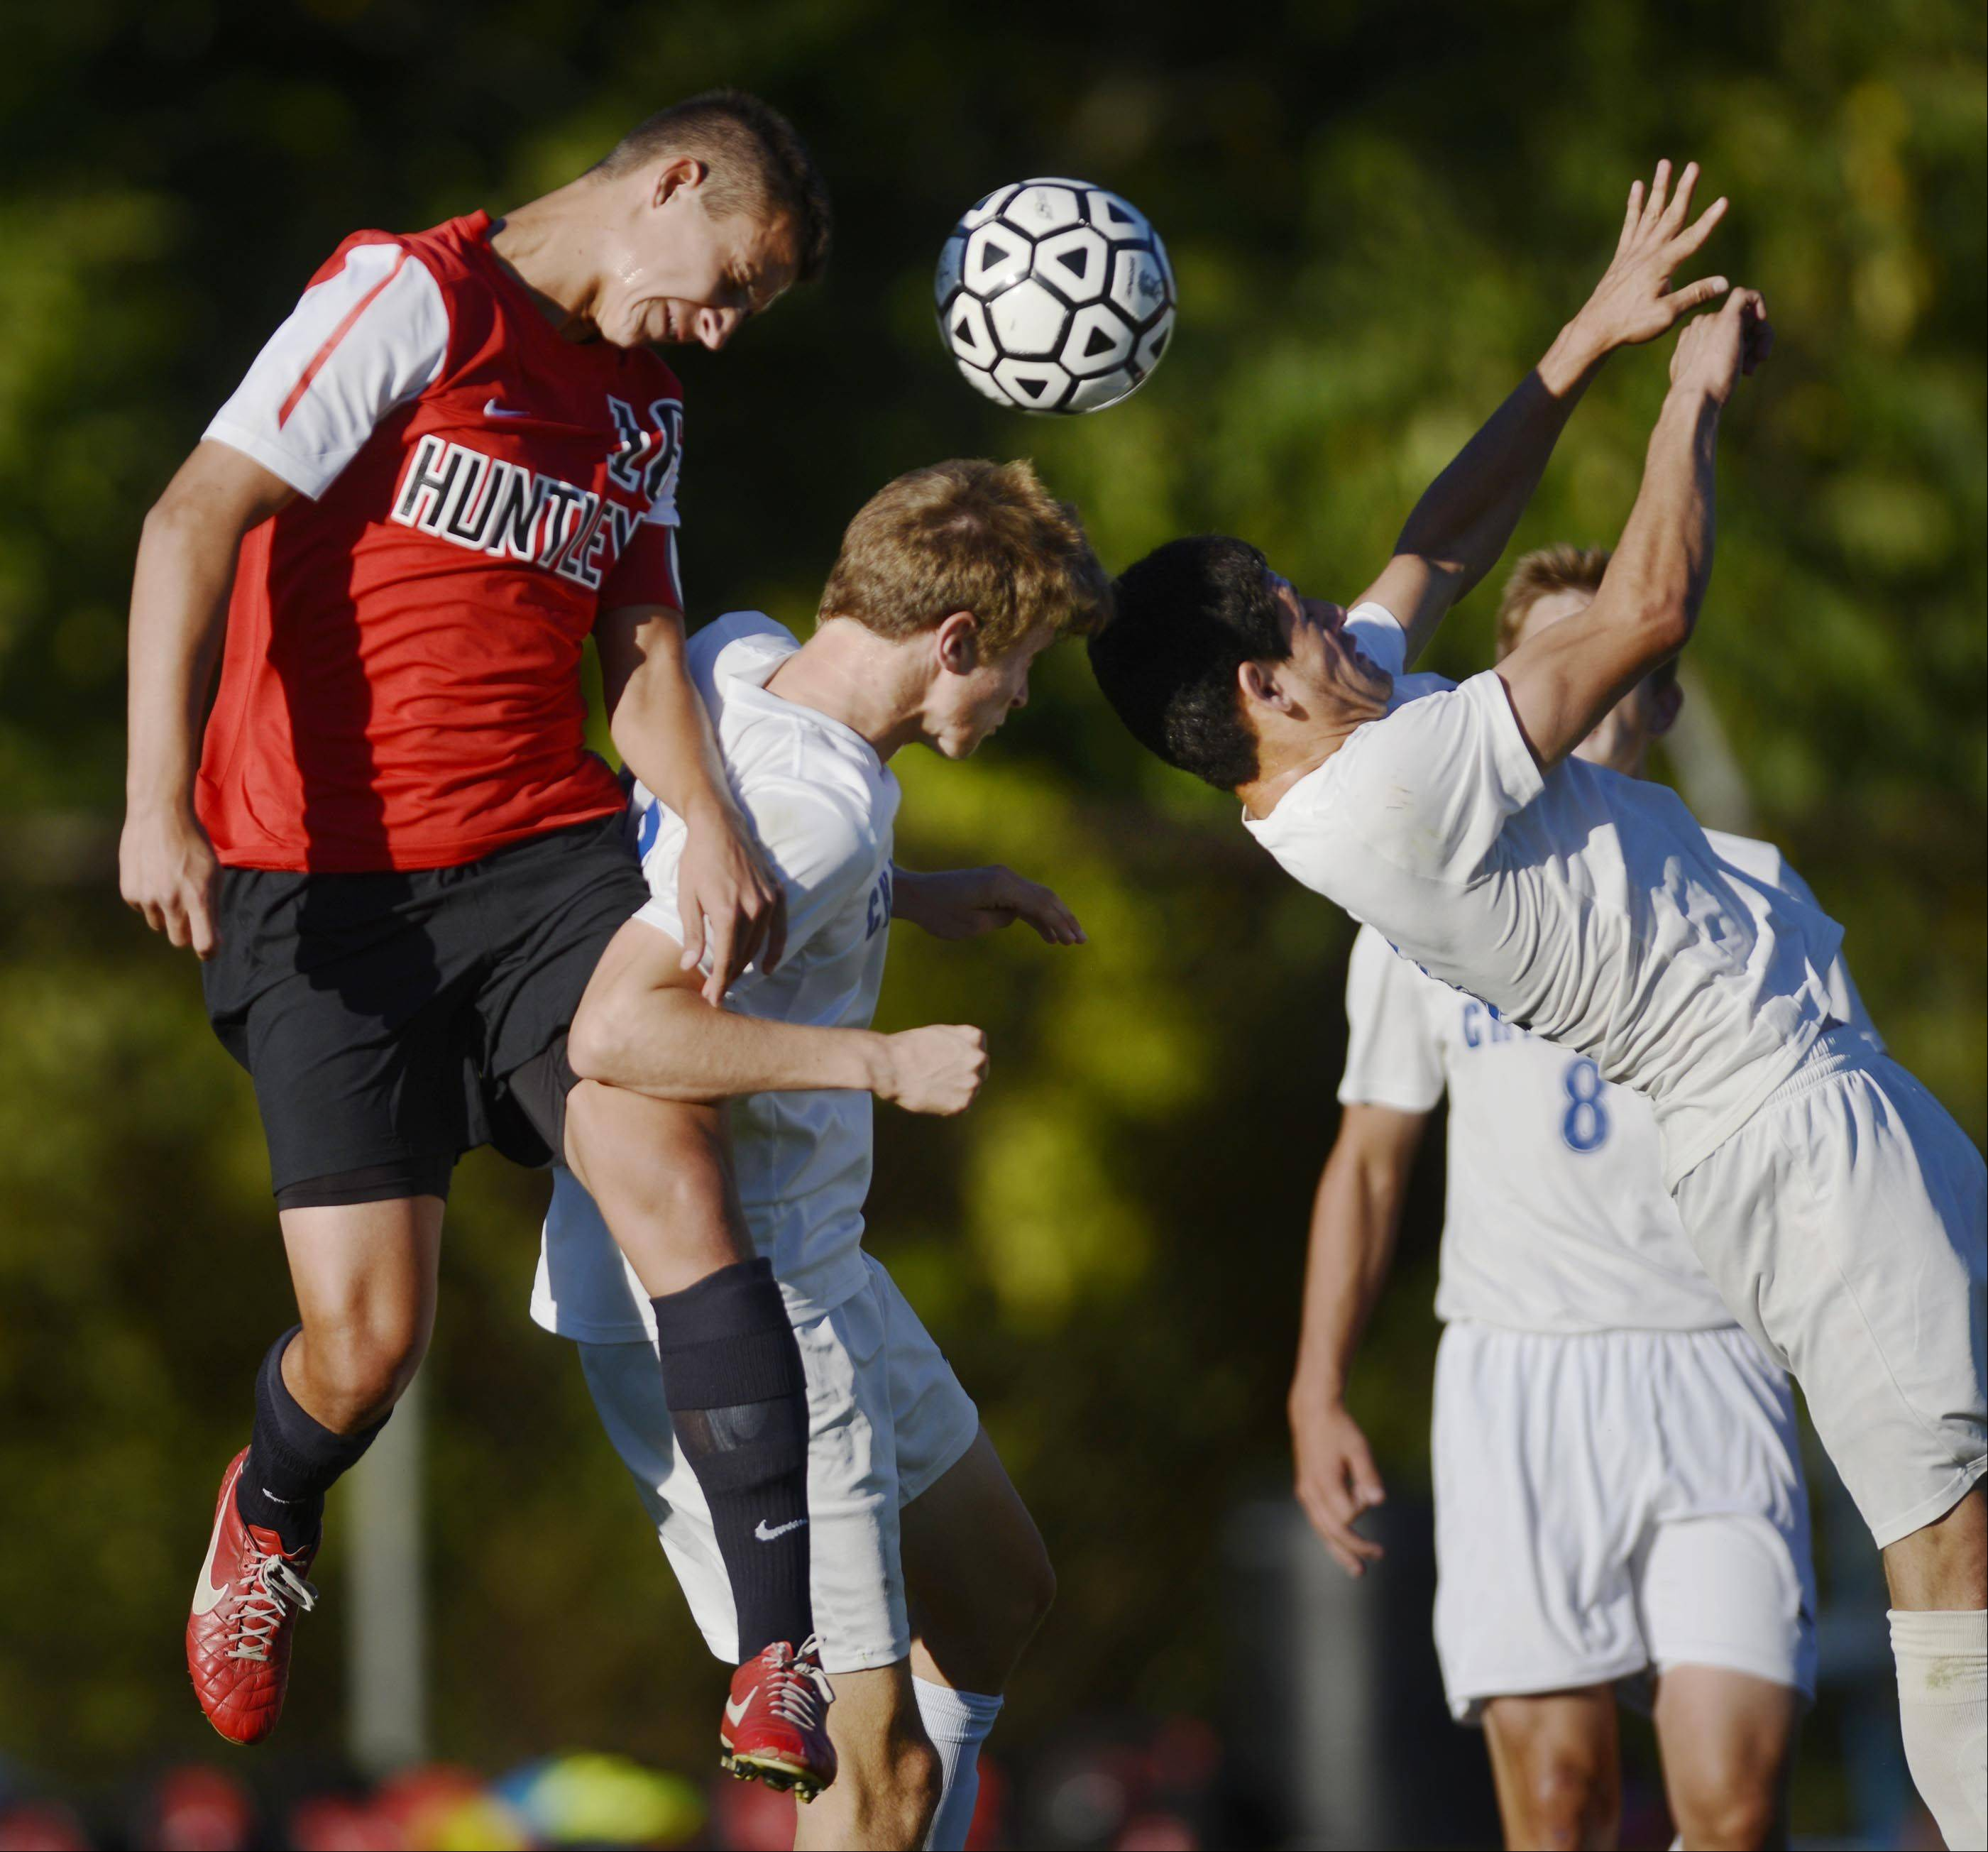 Huntley's Jakub Rys and Dundee-Crown's Ben Stone and Eduardo Arellano, right, compete for a header Tuesday in Carpentersville.